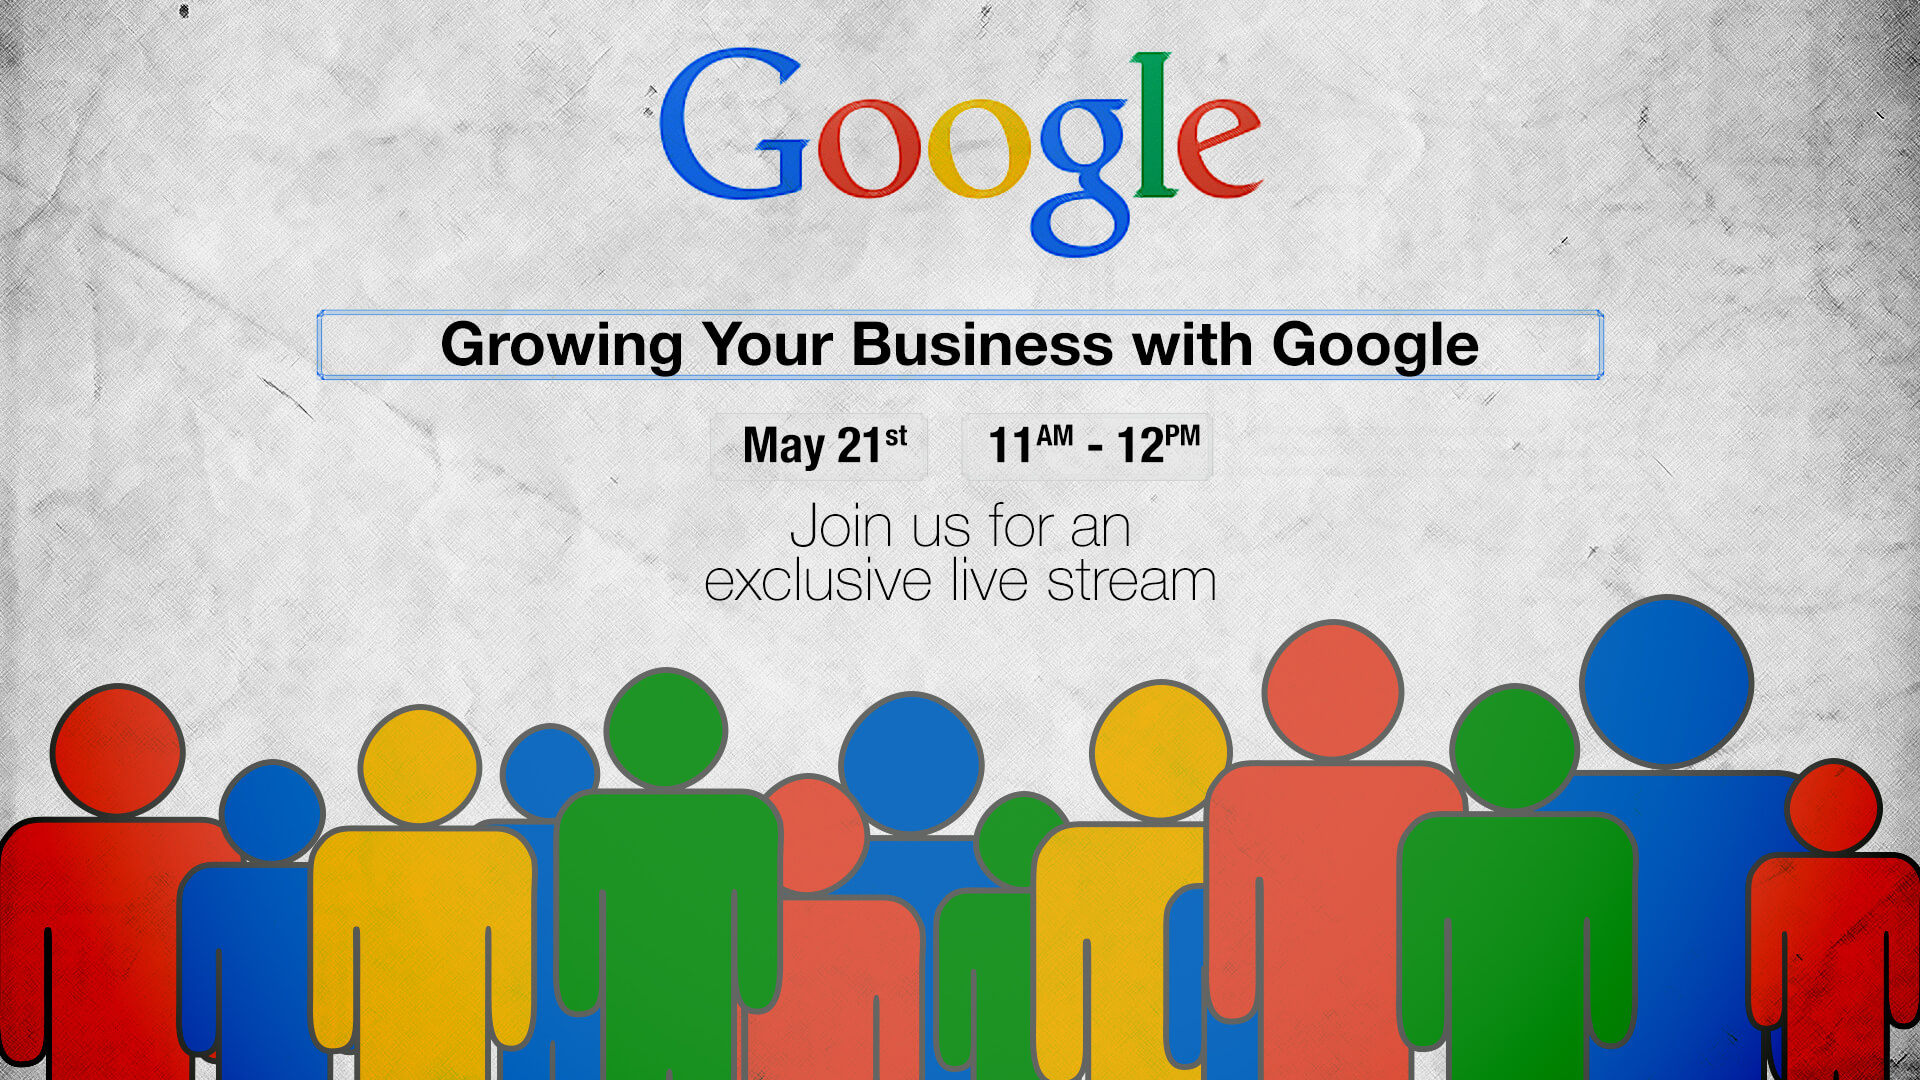 Growing Your Business with Google